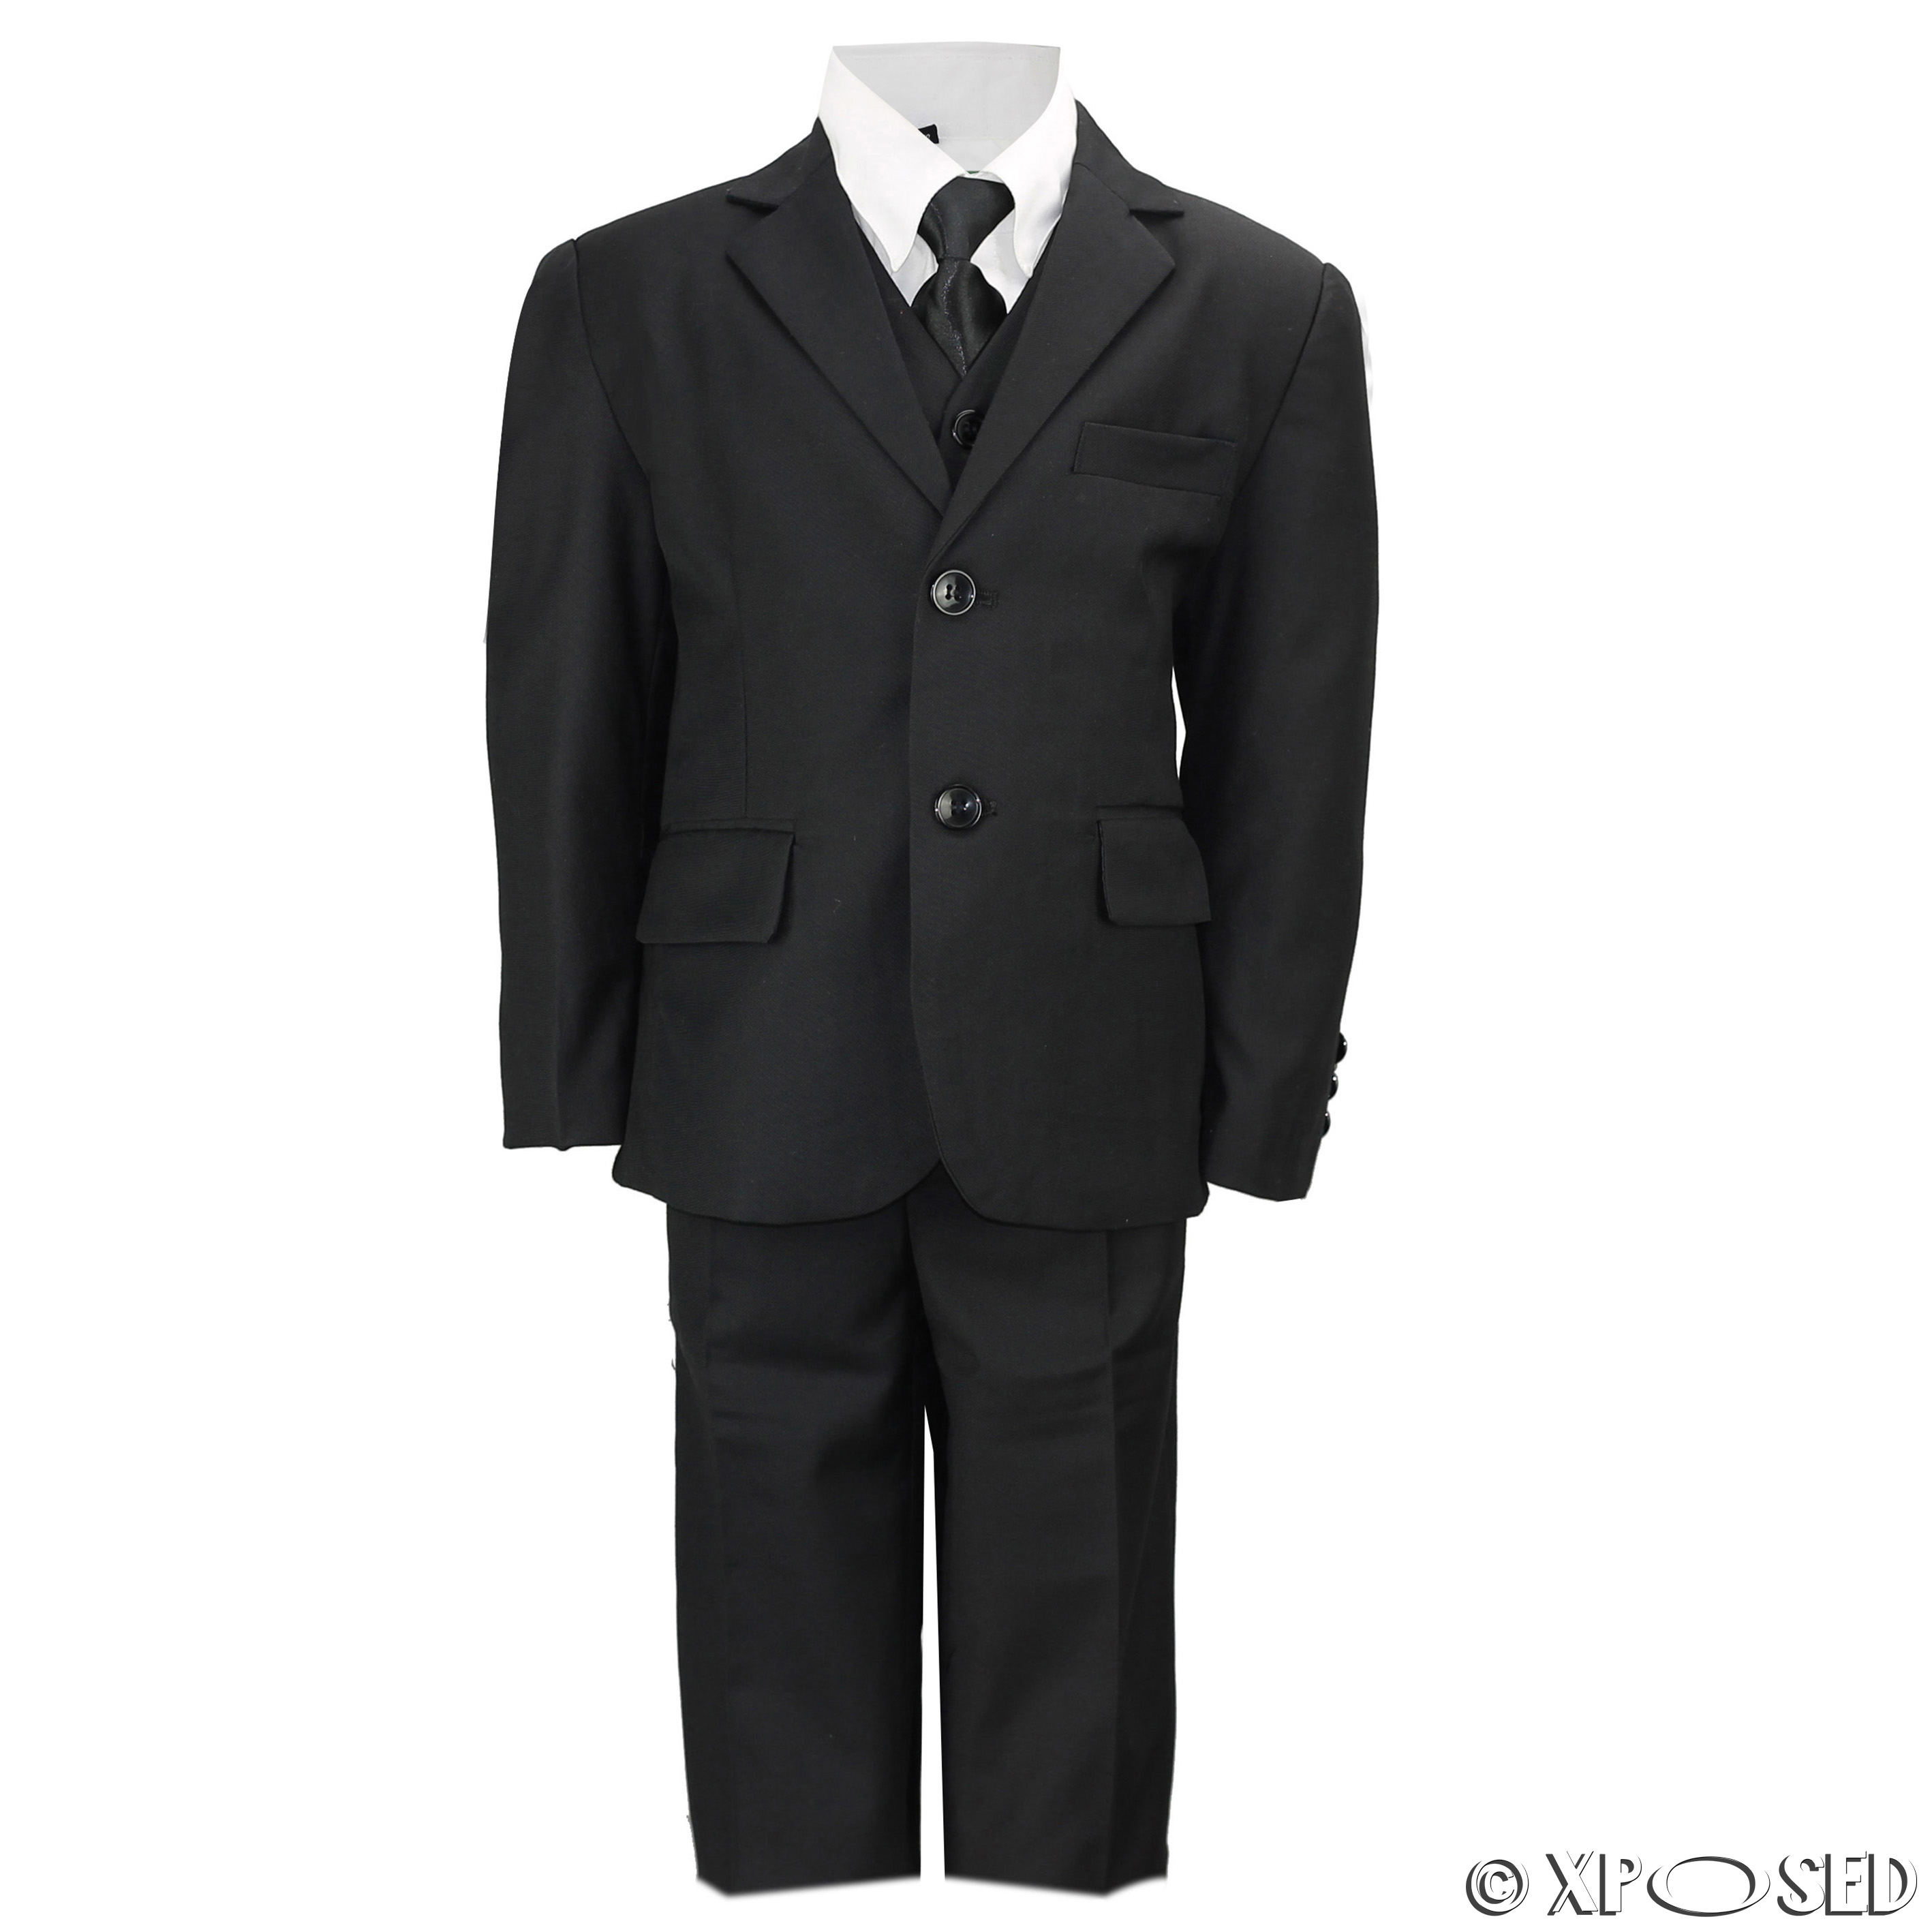 Shop for and buy kids suits online at Macy's. Find kids suits at Macy's.